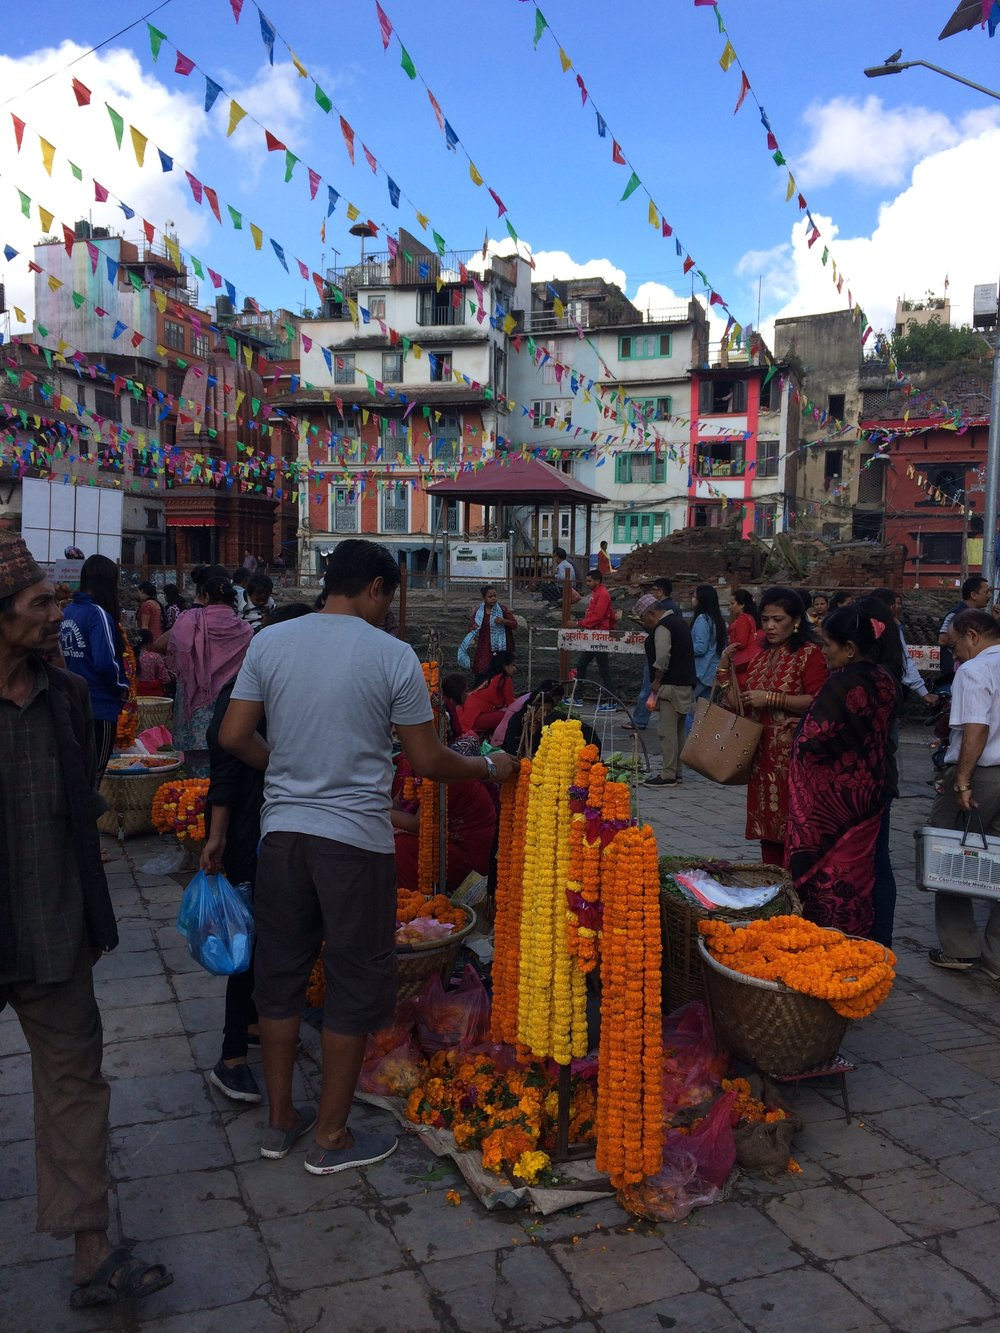 Festivities and marigold necklaces in Kathmandu Durbar Square for Dashain